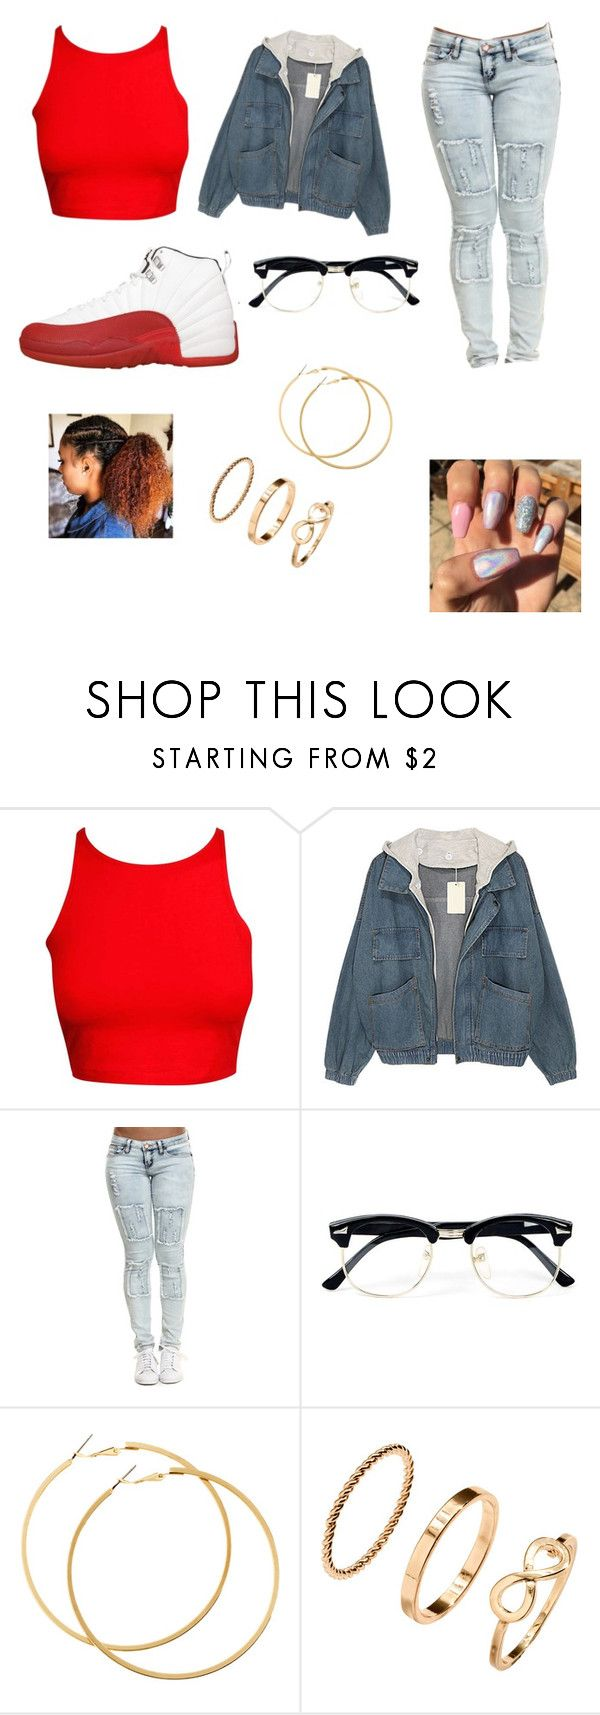 """ouuuu"" by savagesquad2k ❤ liked on Polyvore featuring Topman and H&M"